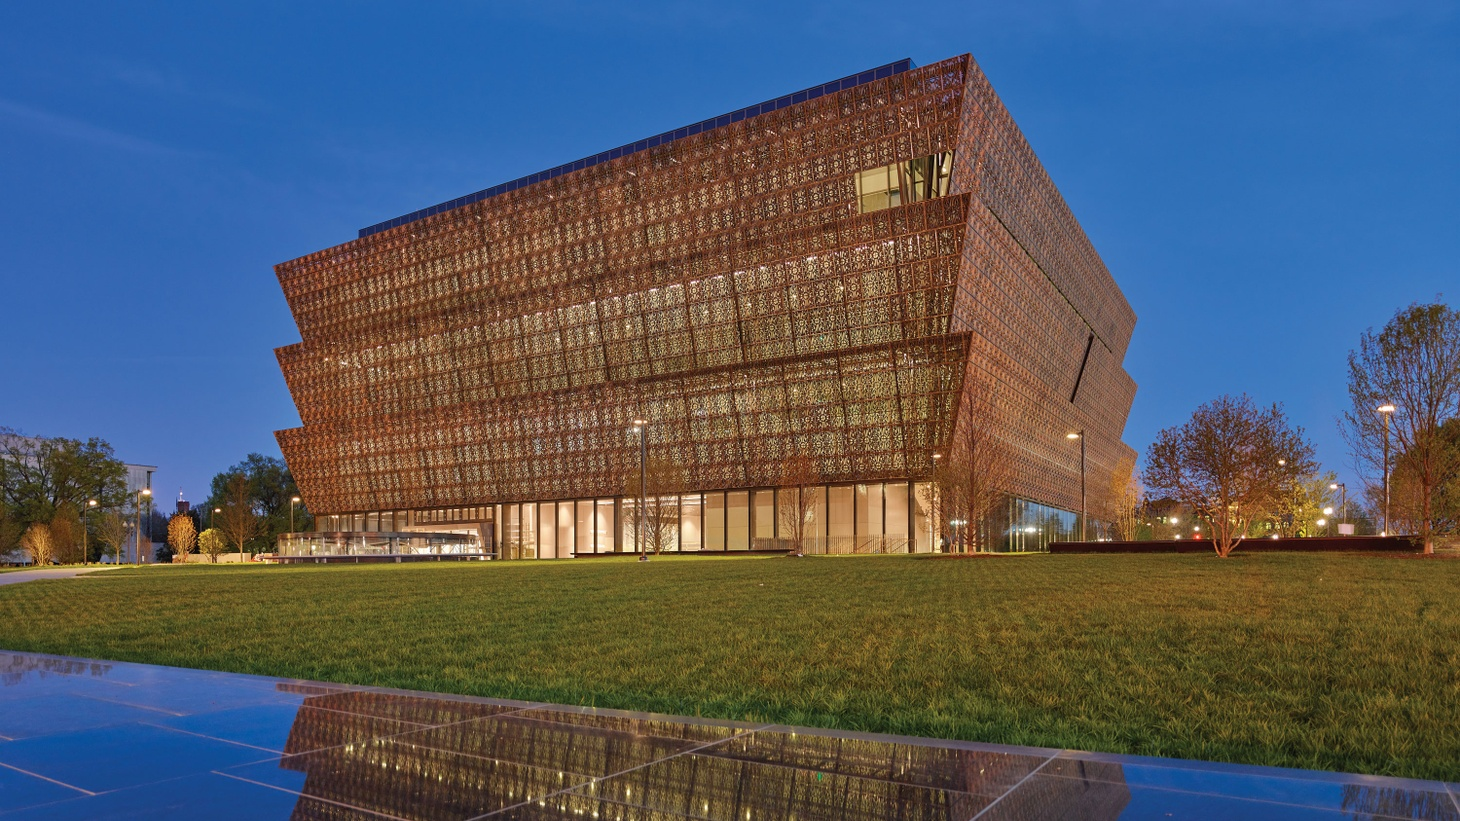 Smithsonian's newest museum is a striking homage to African-American history and culture. We get the inside scoop from the architects and reviews from critics on the building and its artifacts. And move over NIMBYs: the pro-development, YIMBY (Yes In My Back Yard) movement is heating up across the country, and here in Los Angeles.